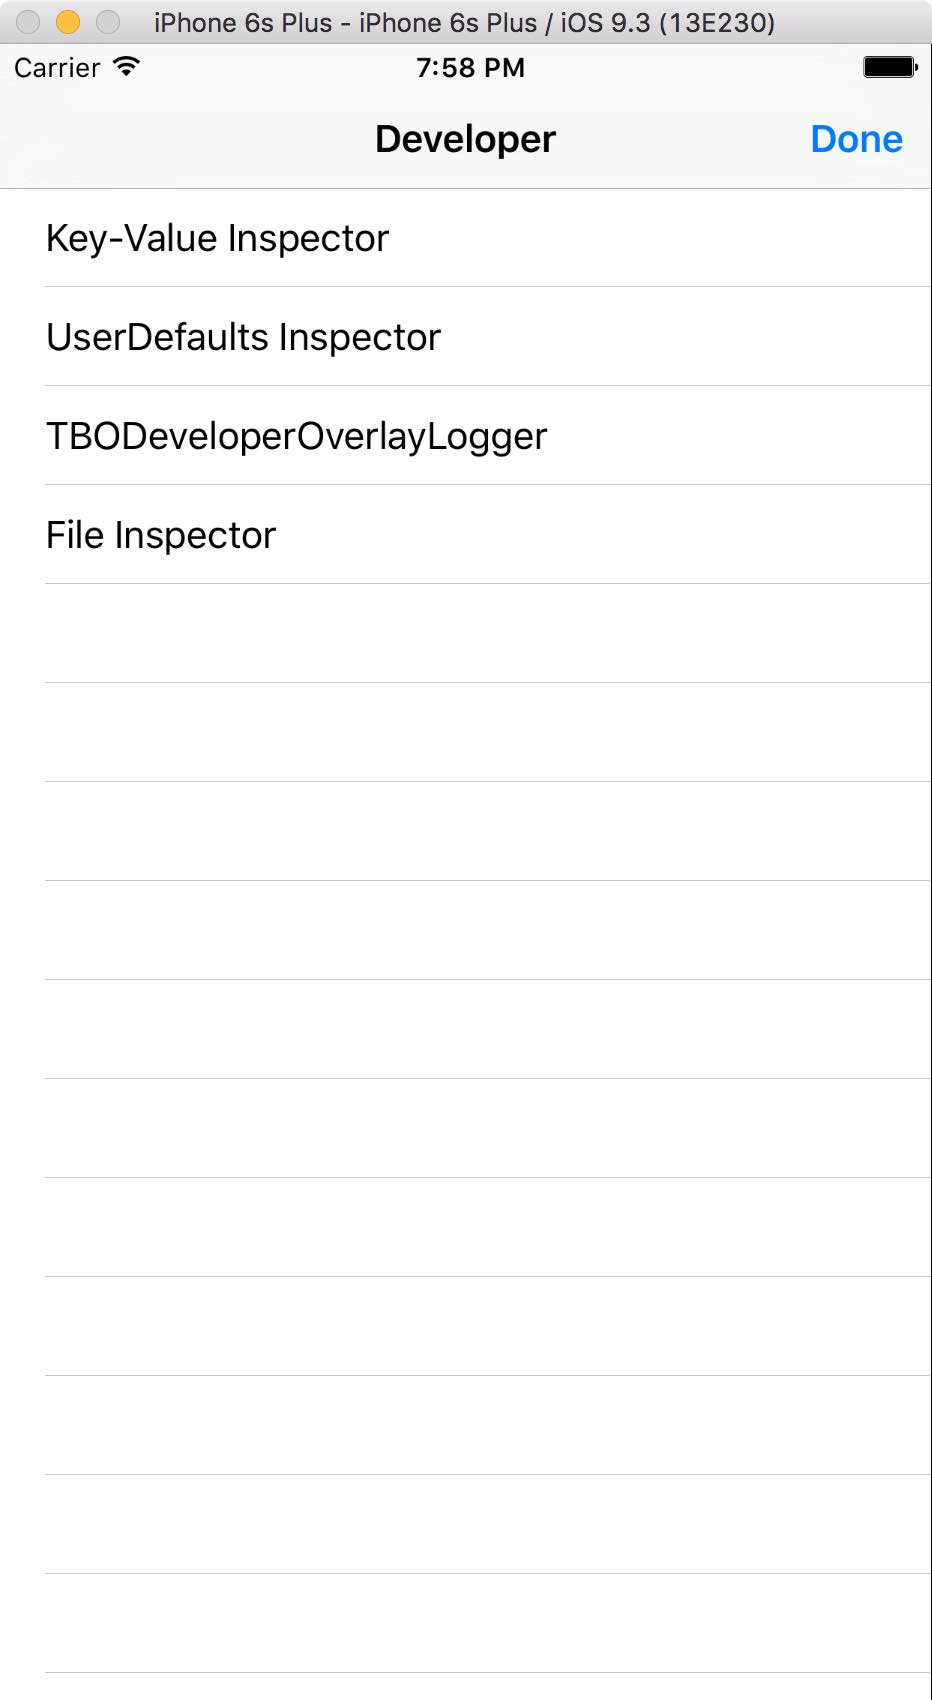 TBODeveloperOverlay Plugin List